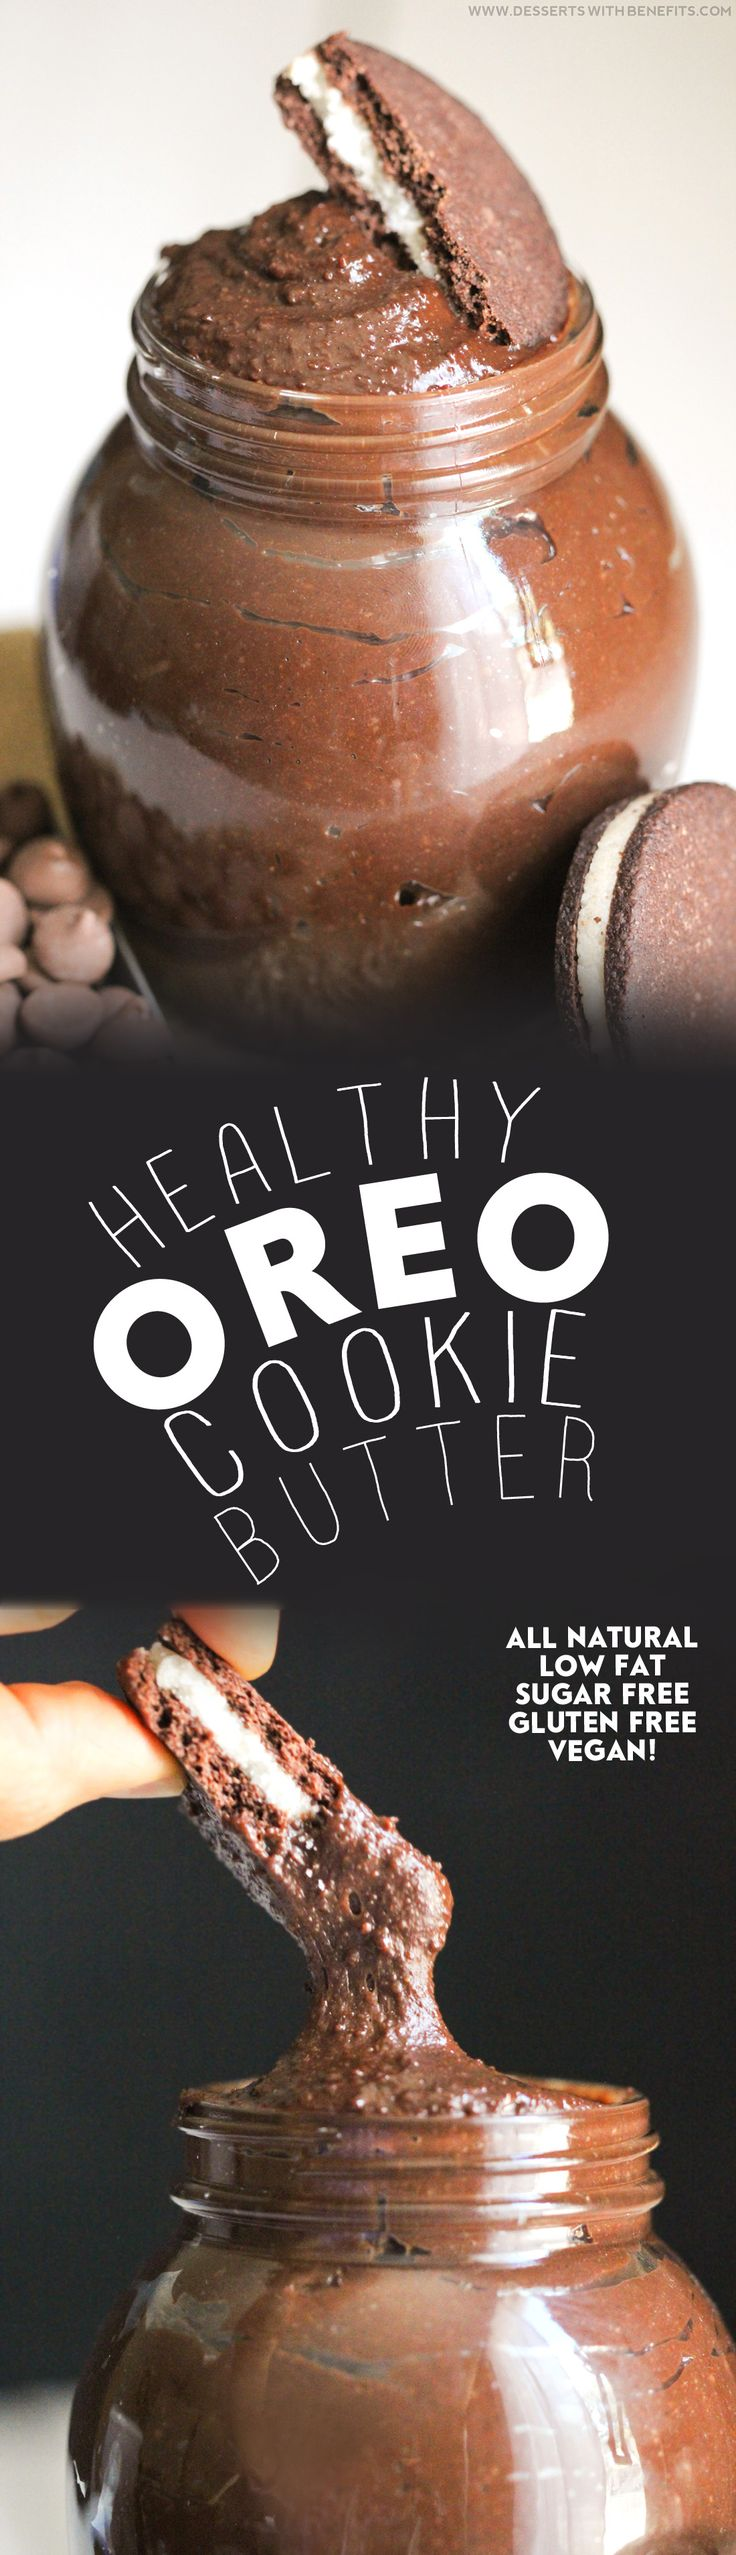 Healthy Oreo Cookie Butter recipe -- thick, rich, sweet, and chocolatey, it'll beat peanut butter and almond butter ANY DAY! You'd never know it's sugar free, low calorie, low fat, gluten free, dairy free, and vegan! Healthy Dessert Recipes at Desserts with Benefits